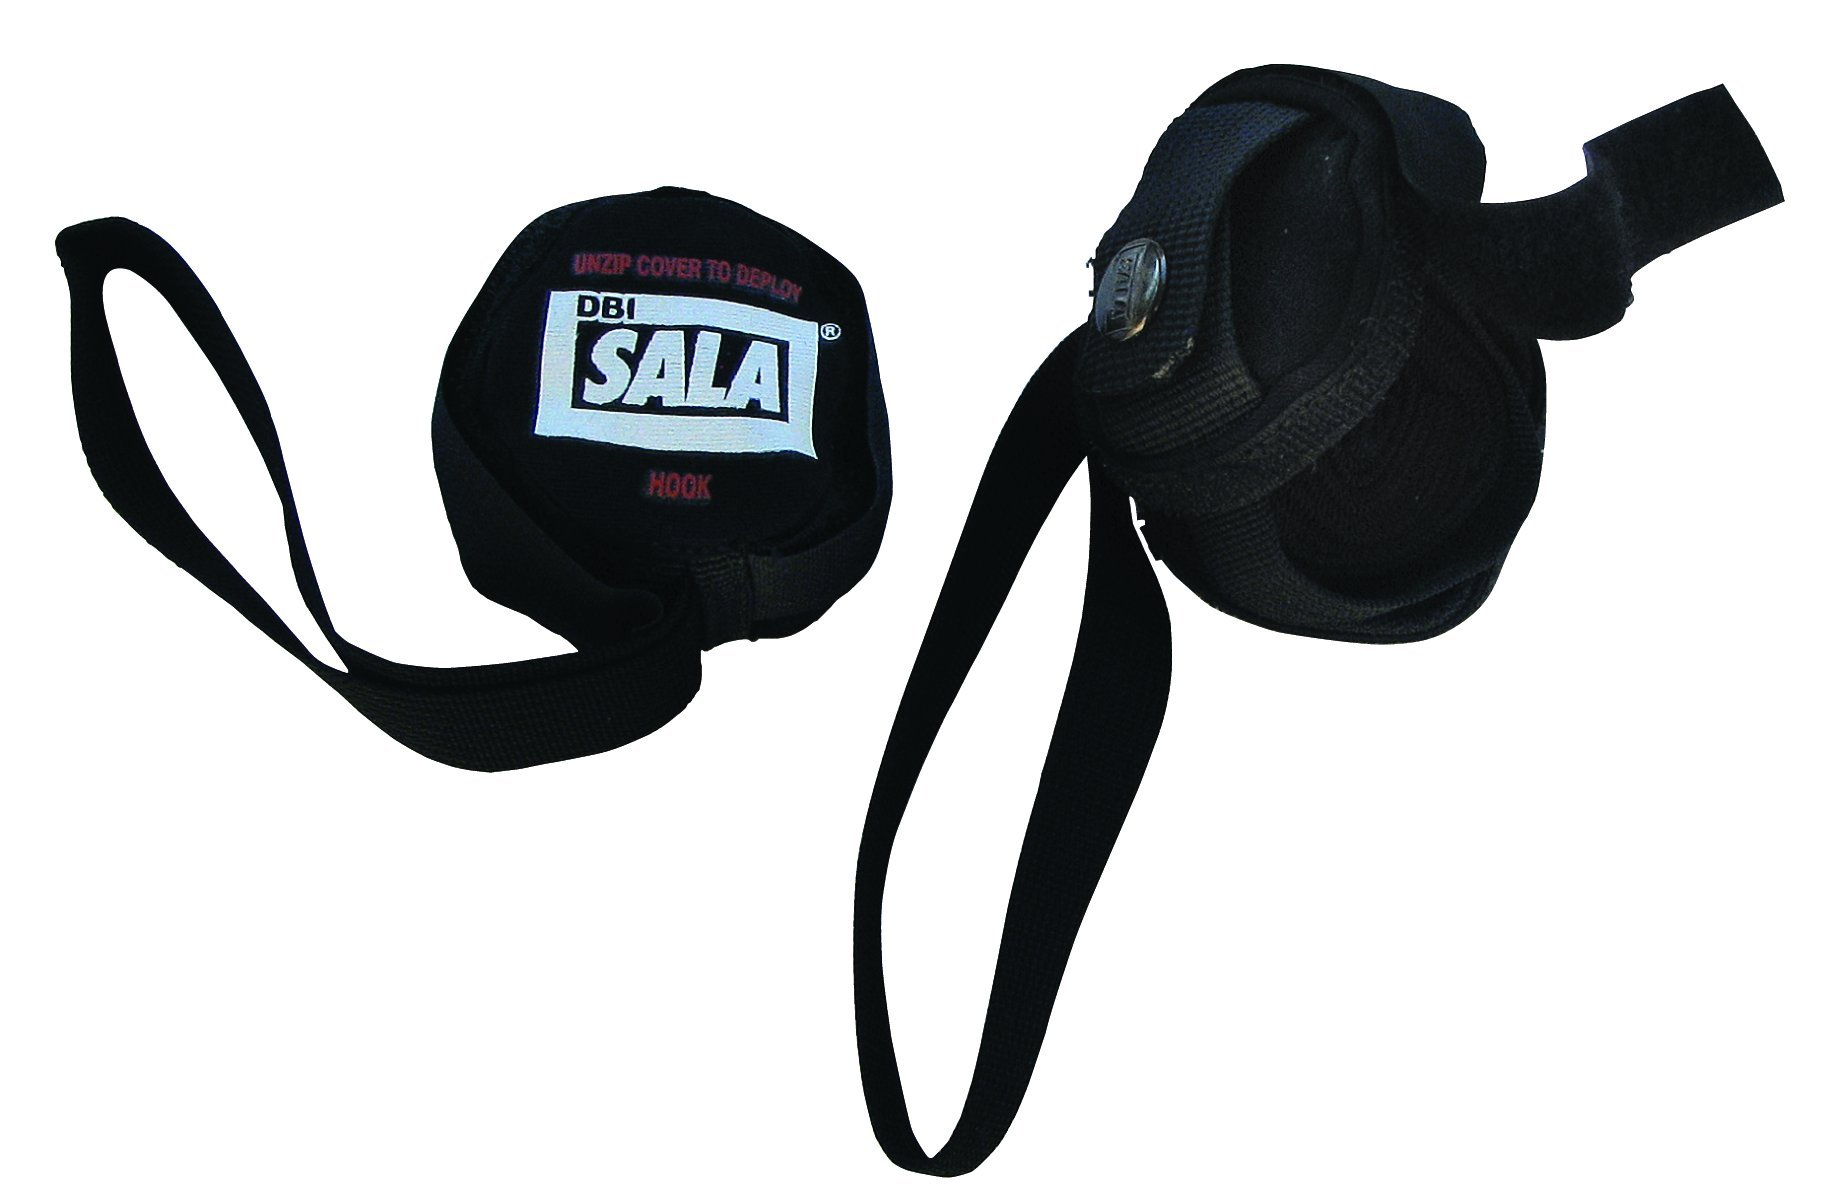 3M DBI-SALA 9505712 Suspension Trauma Safety Straps, One Pair, Fire Resistant, Attaches To Most Harnesses, Black